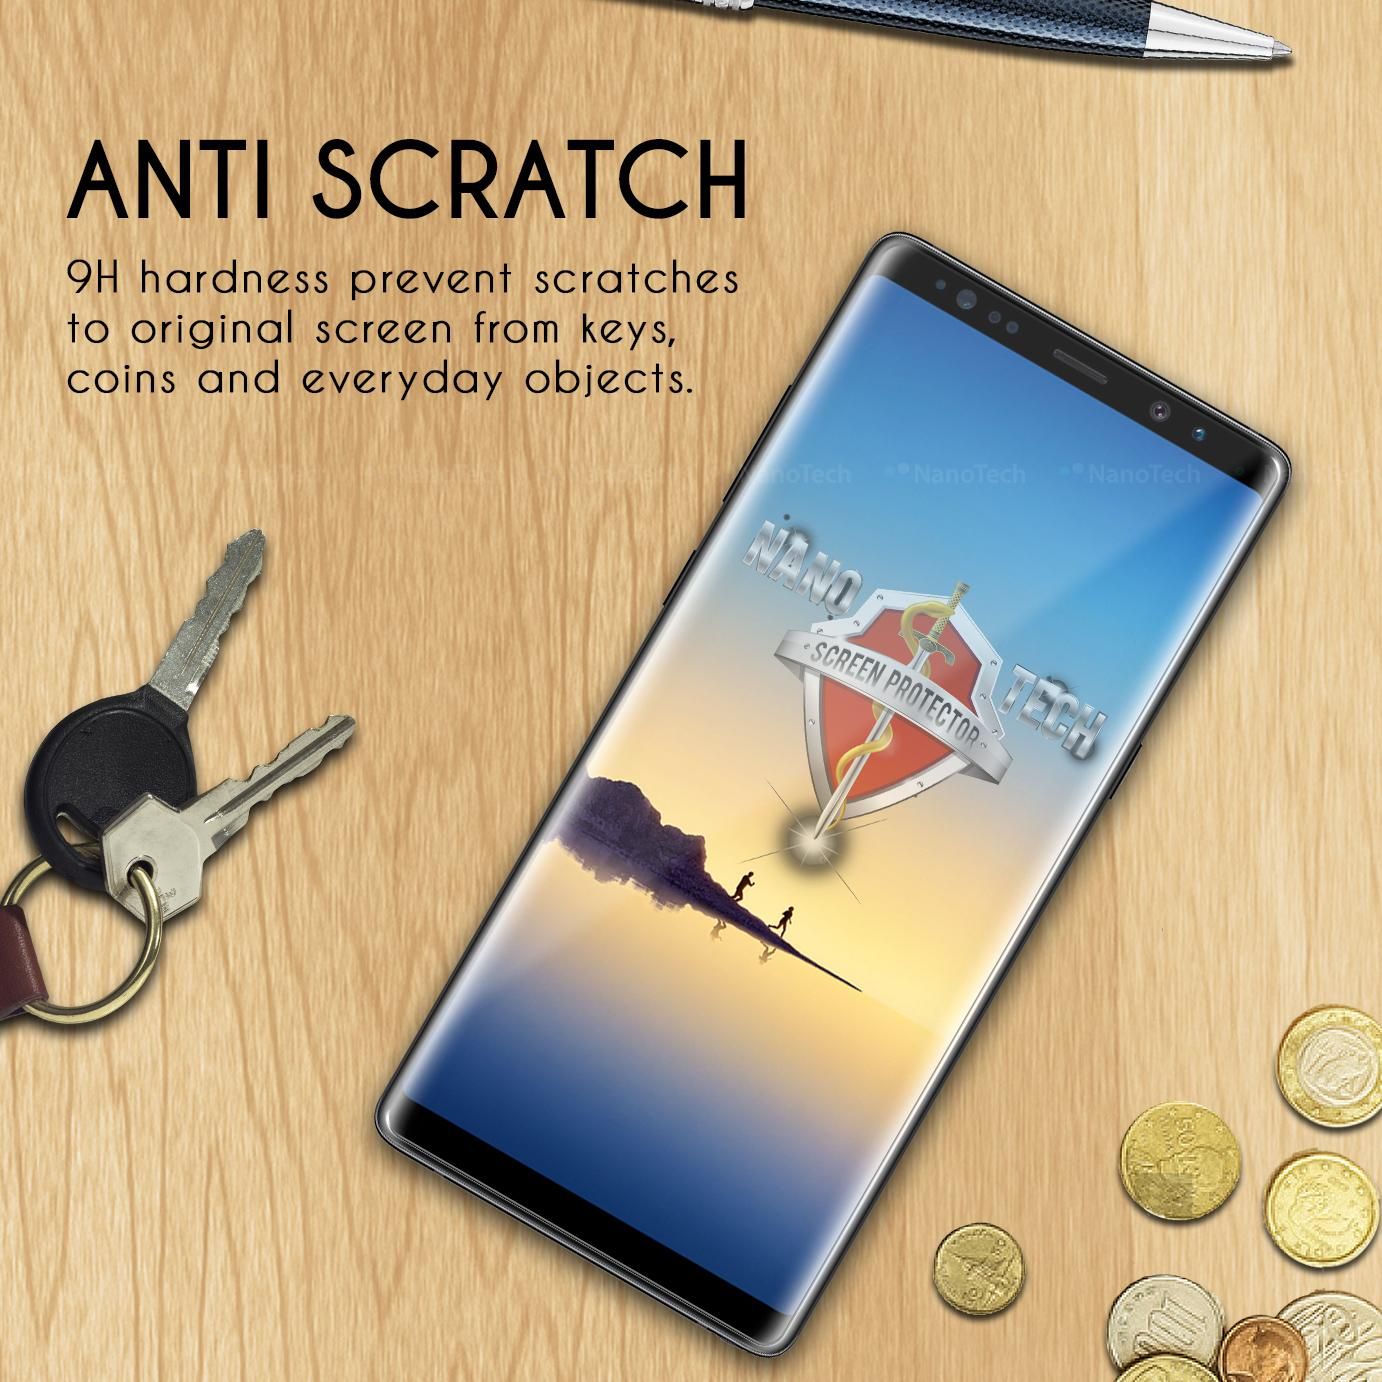 [FreeGift] Nanotech Samsung Galaxy Note 9 Case-Friendly Curved Tempered Glass Screen Protector [Black, Curved Coverage]